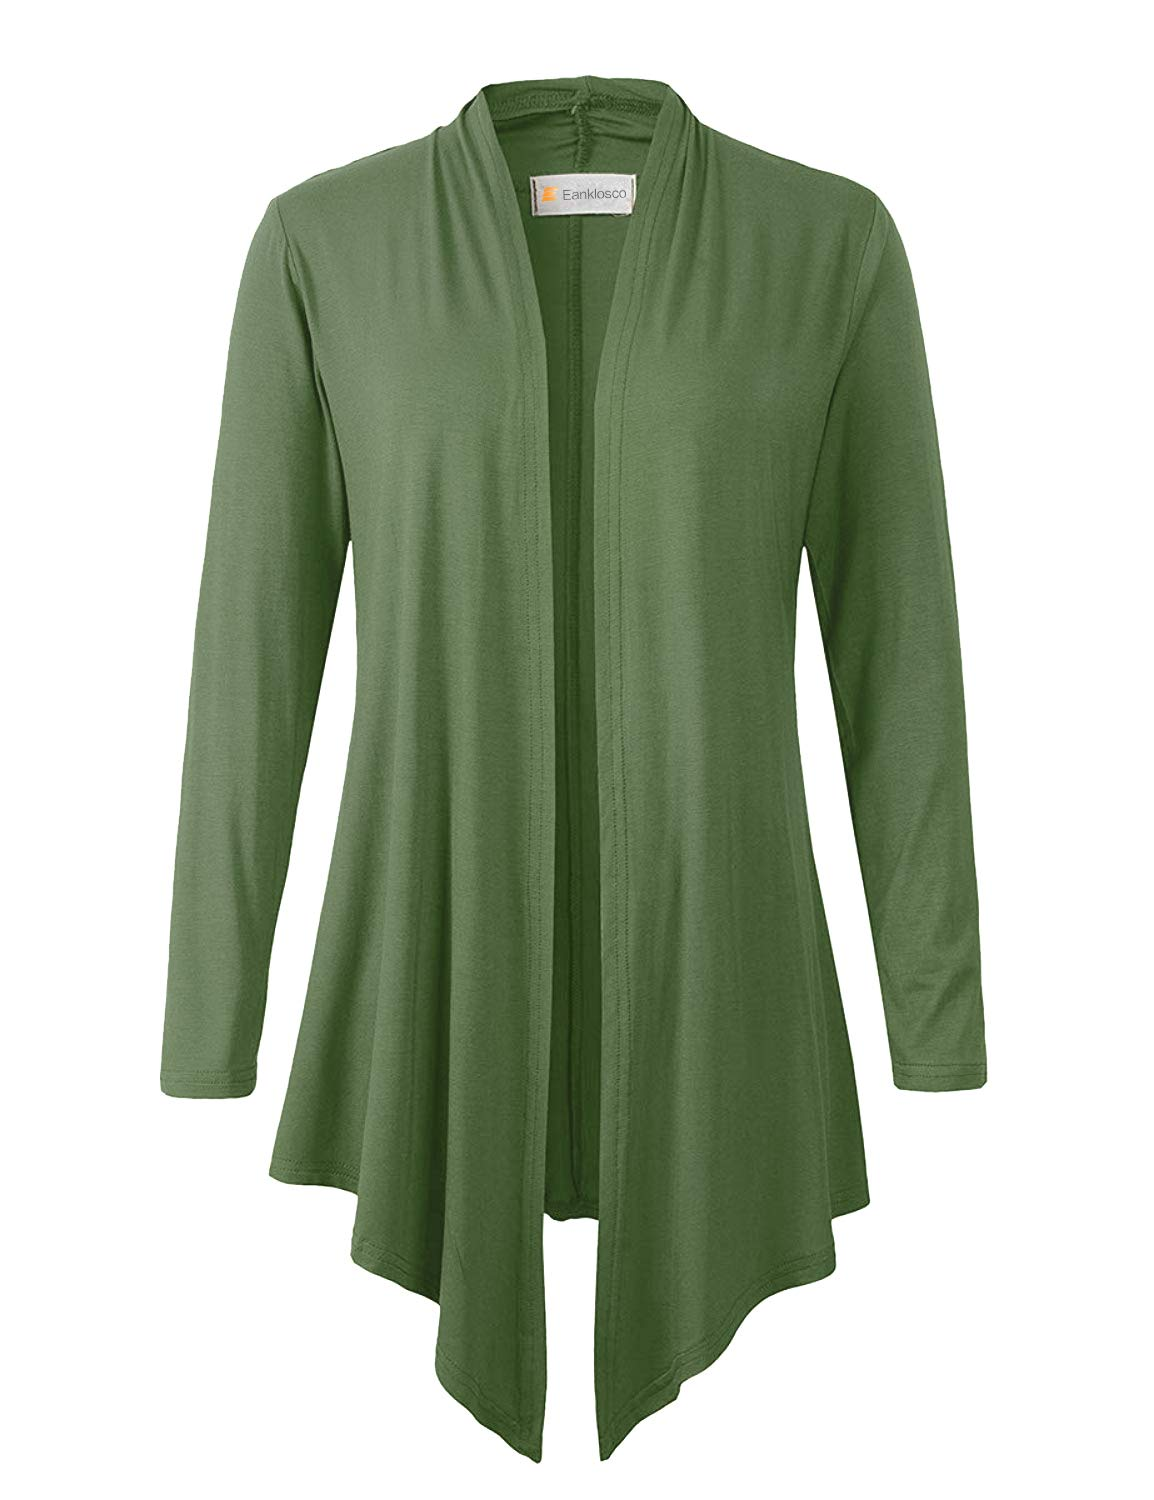 Eanklosco Women's Long Sleeve Drape Open-Front Cardigan Light Weight Irregular Hem Casual Tops (M, Army Green)